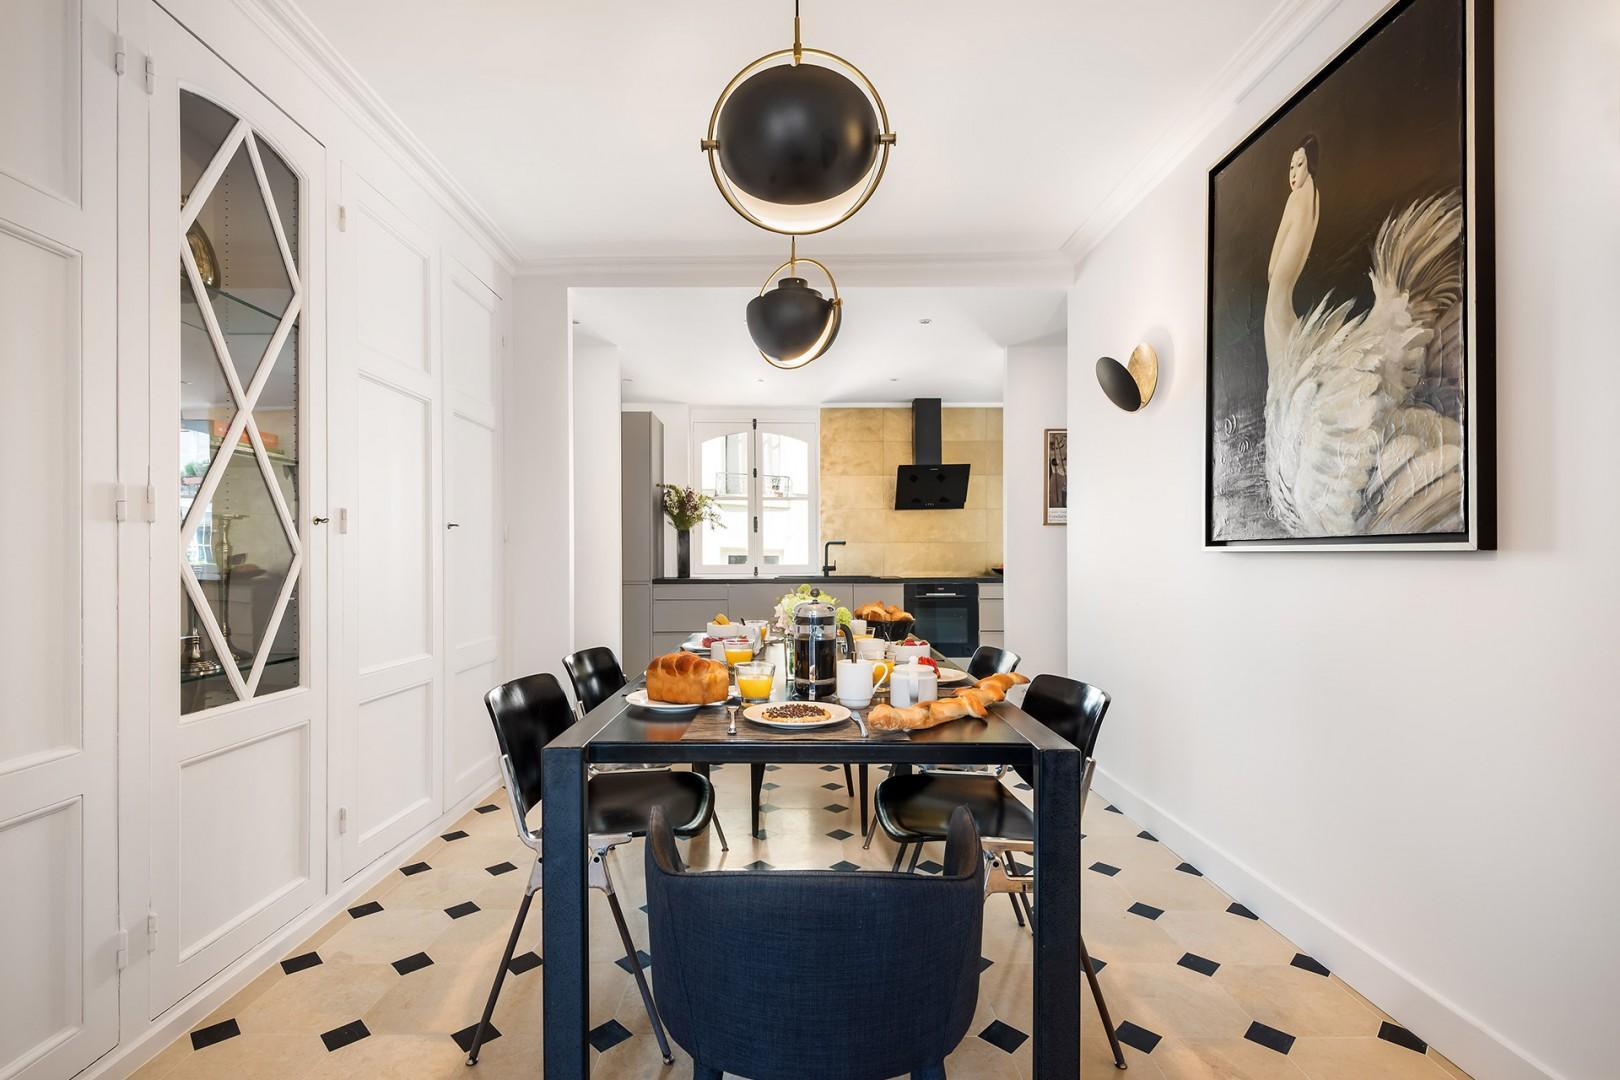 Enjoy the classic French details, like parquet floors and a high ceiling.